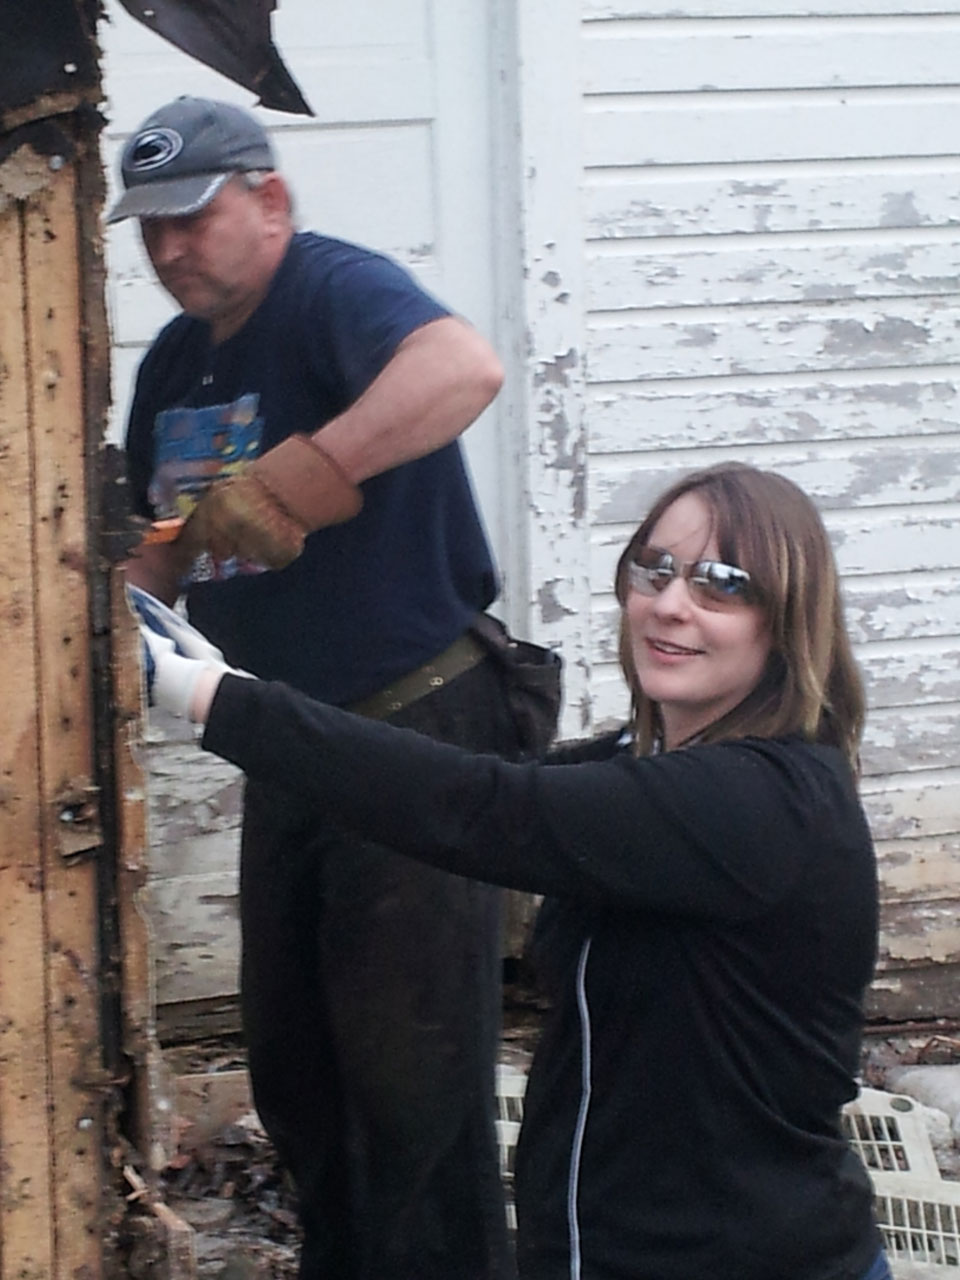 Dan and his daughter/nominator, Ashley tearing down an old garage.